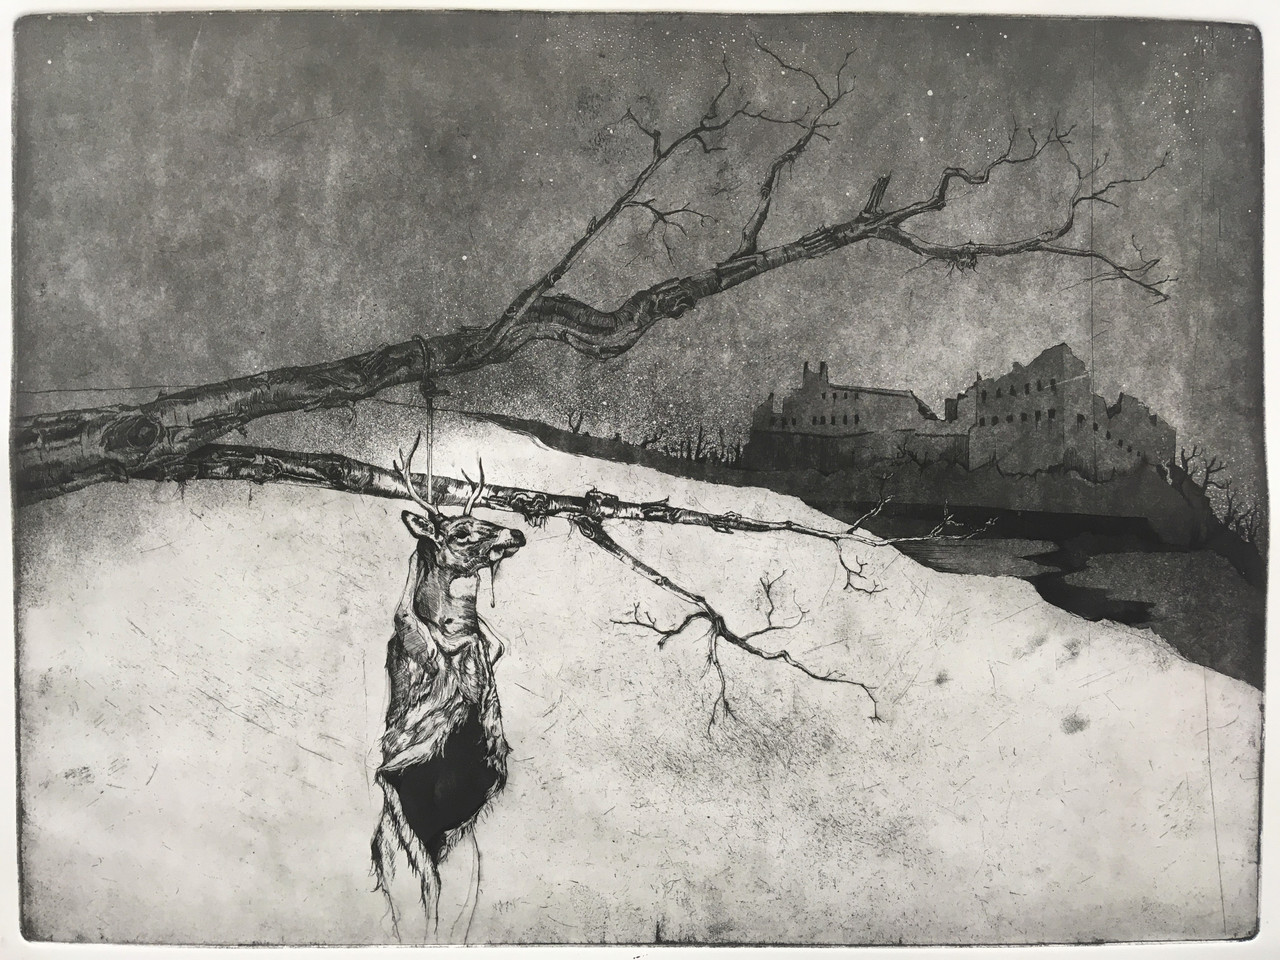 Pennsylvania Winter, etching by Lucas Pointon.